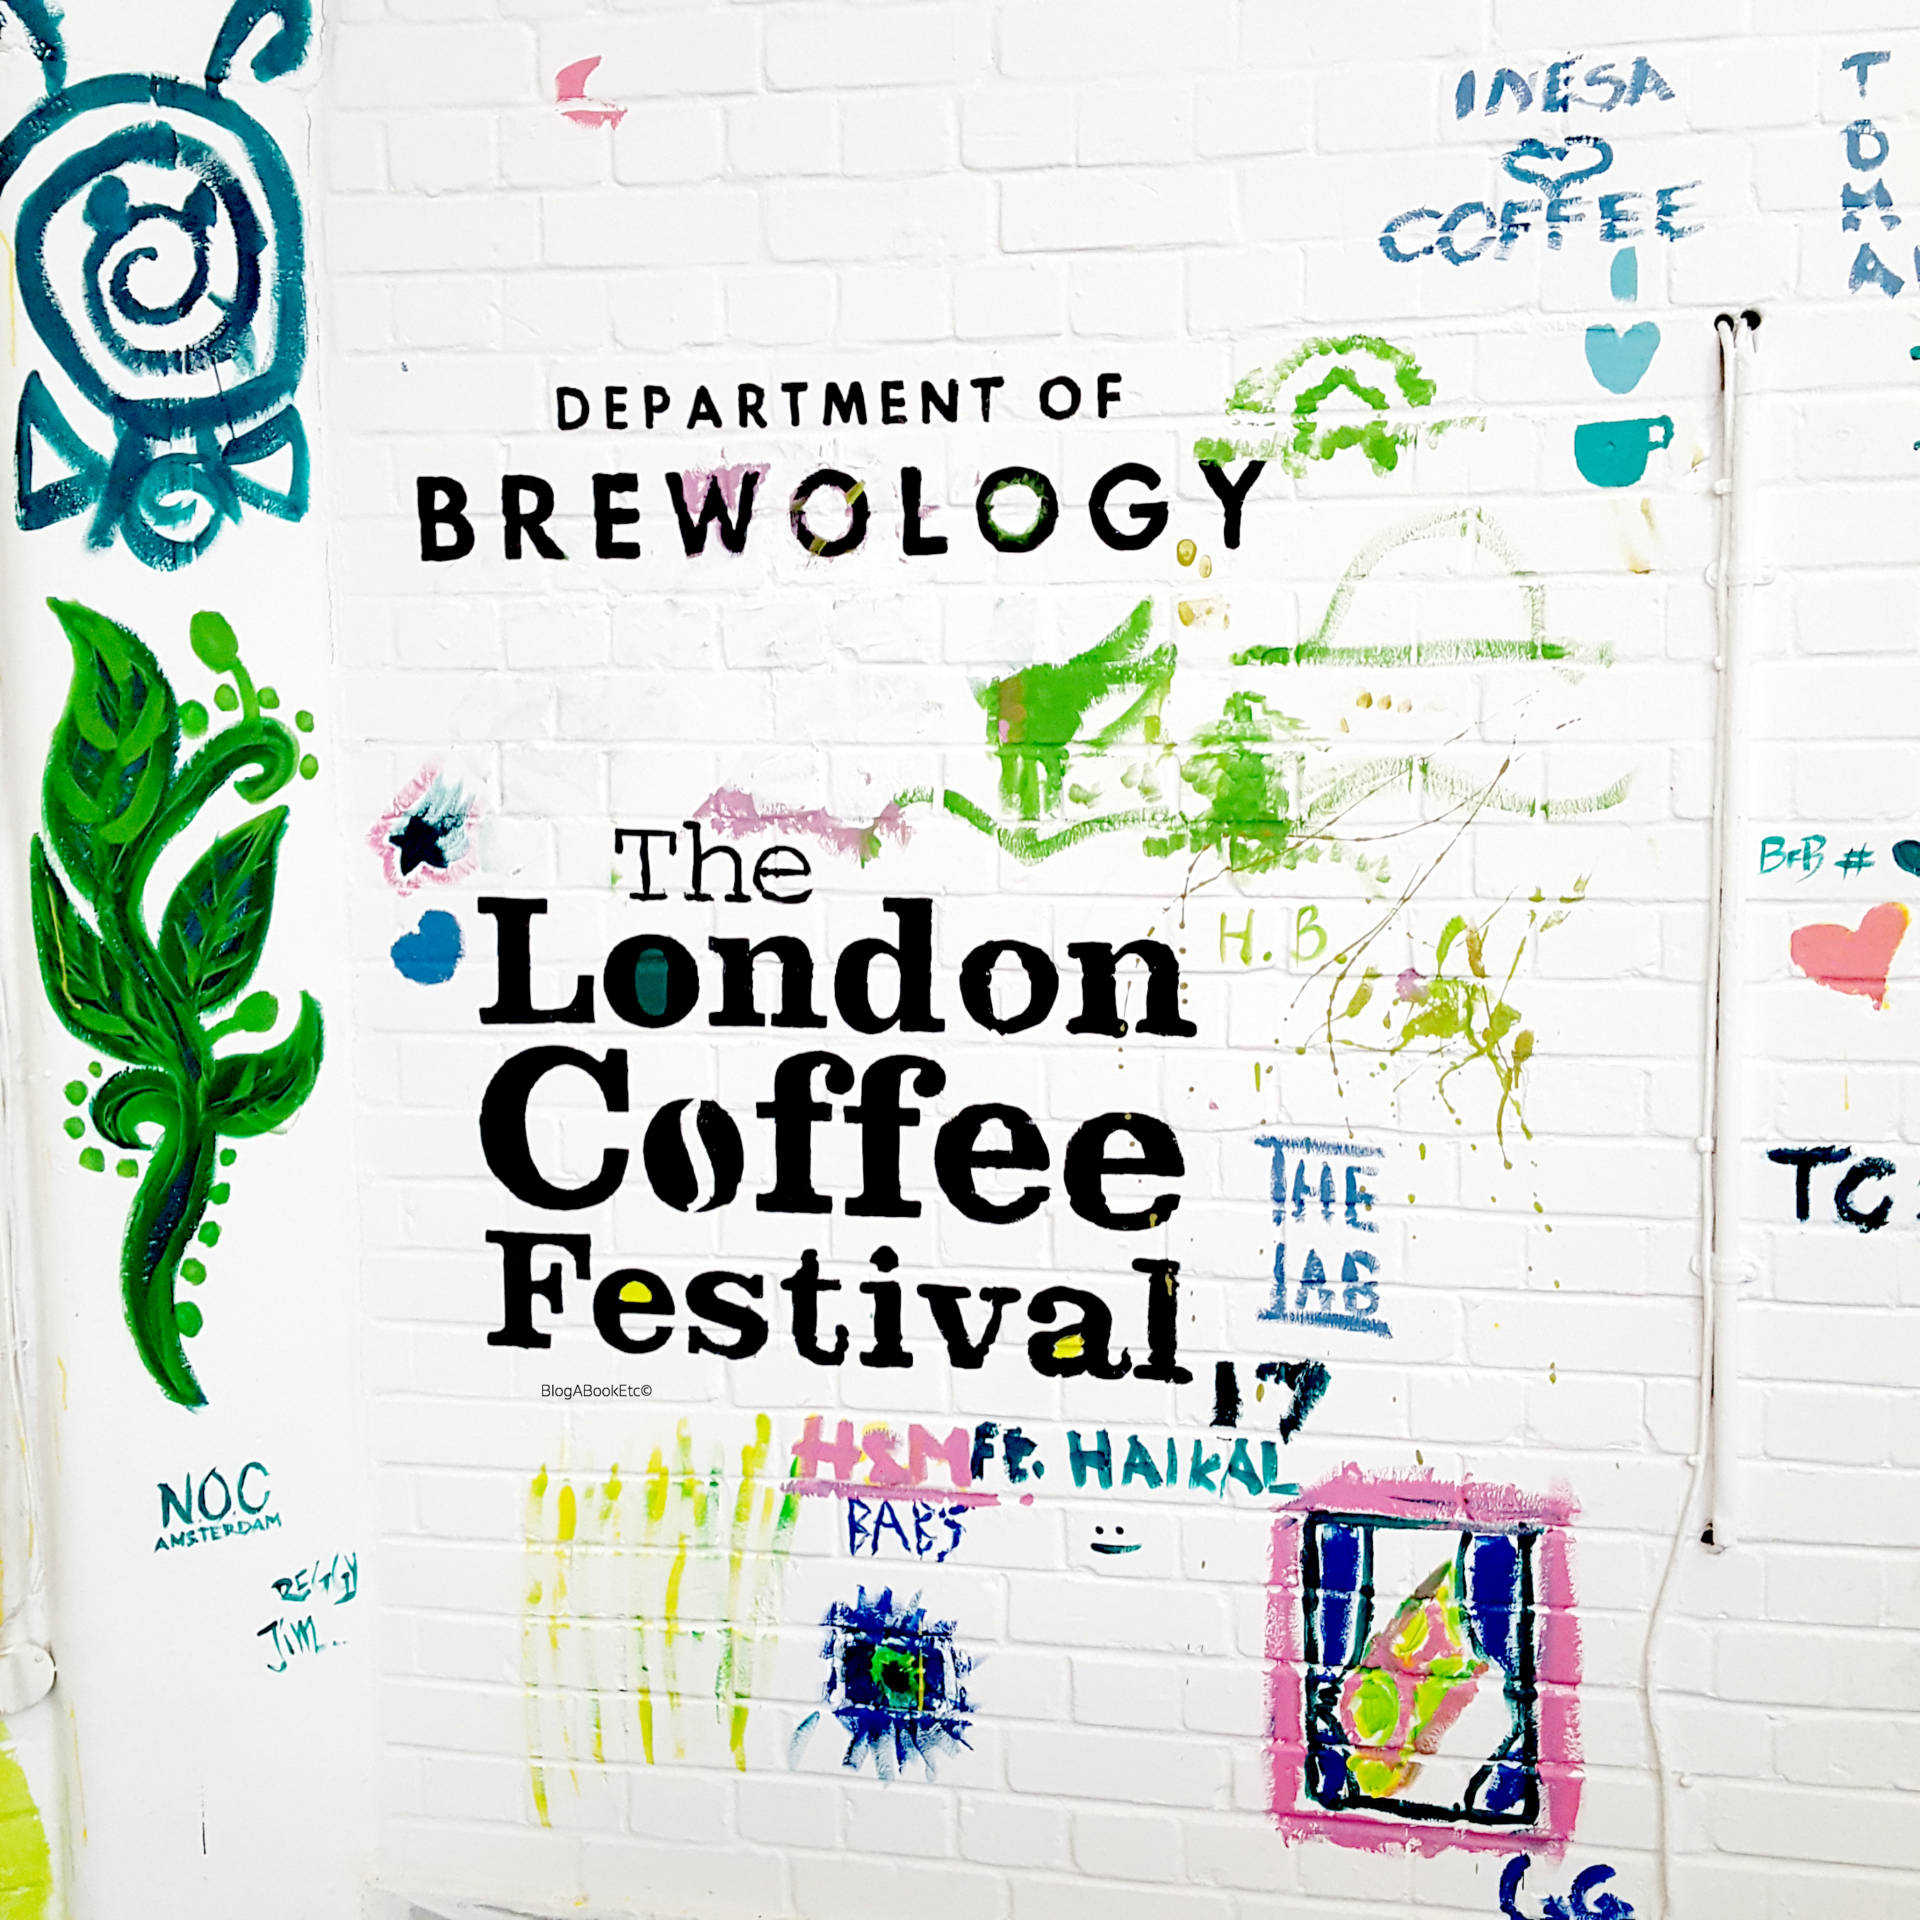 The London Coffee Festival 2017, London Coffee Festival, LCF17, Coffee, Festival, Coffee Festival, London, Wall Art, Street Art, Art, Mural, Filter Coffee, People, Life, Lifestyle, Blogger, London Blogger, Department of Brewology, Brew, Coffee Brew, Mural, Painting, Blog A Book Etc, Fay